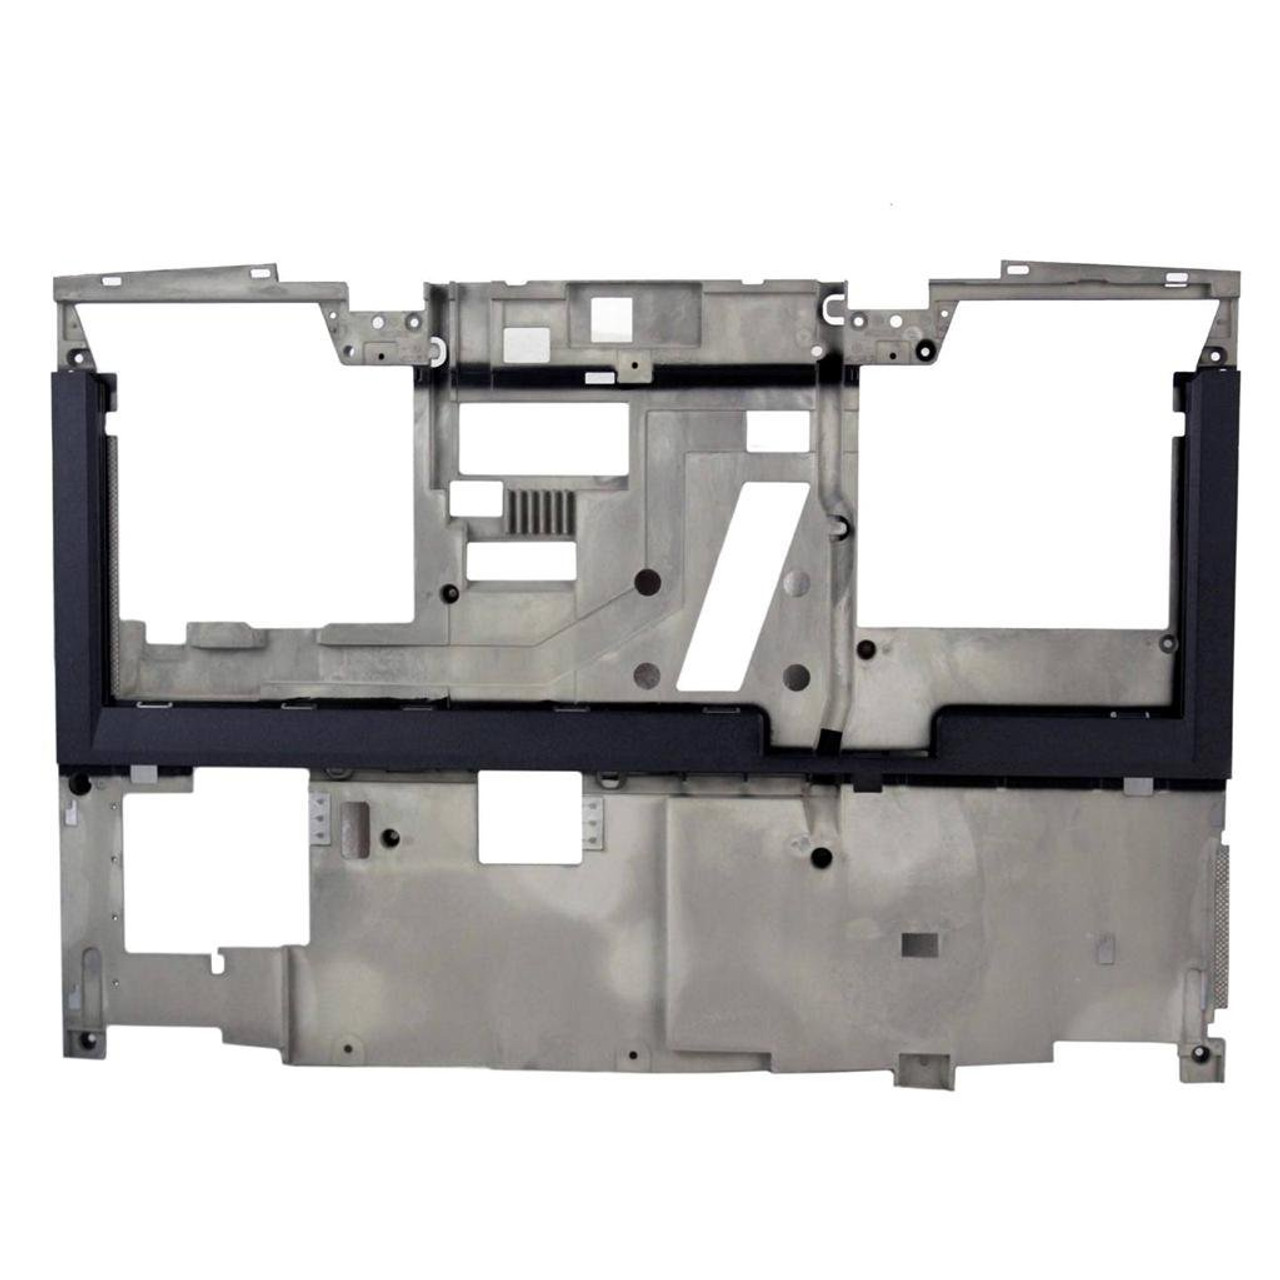 Alienware M17xR2 Keyboard Tray Frame Cover Assembly - 3MJ0K